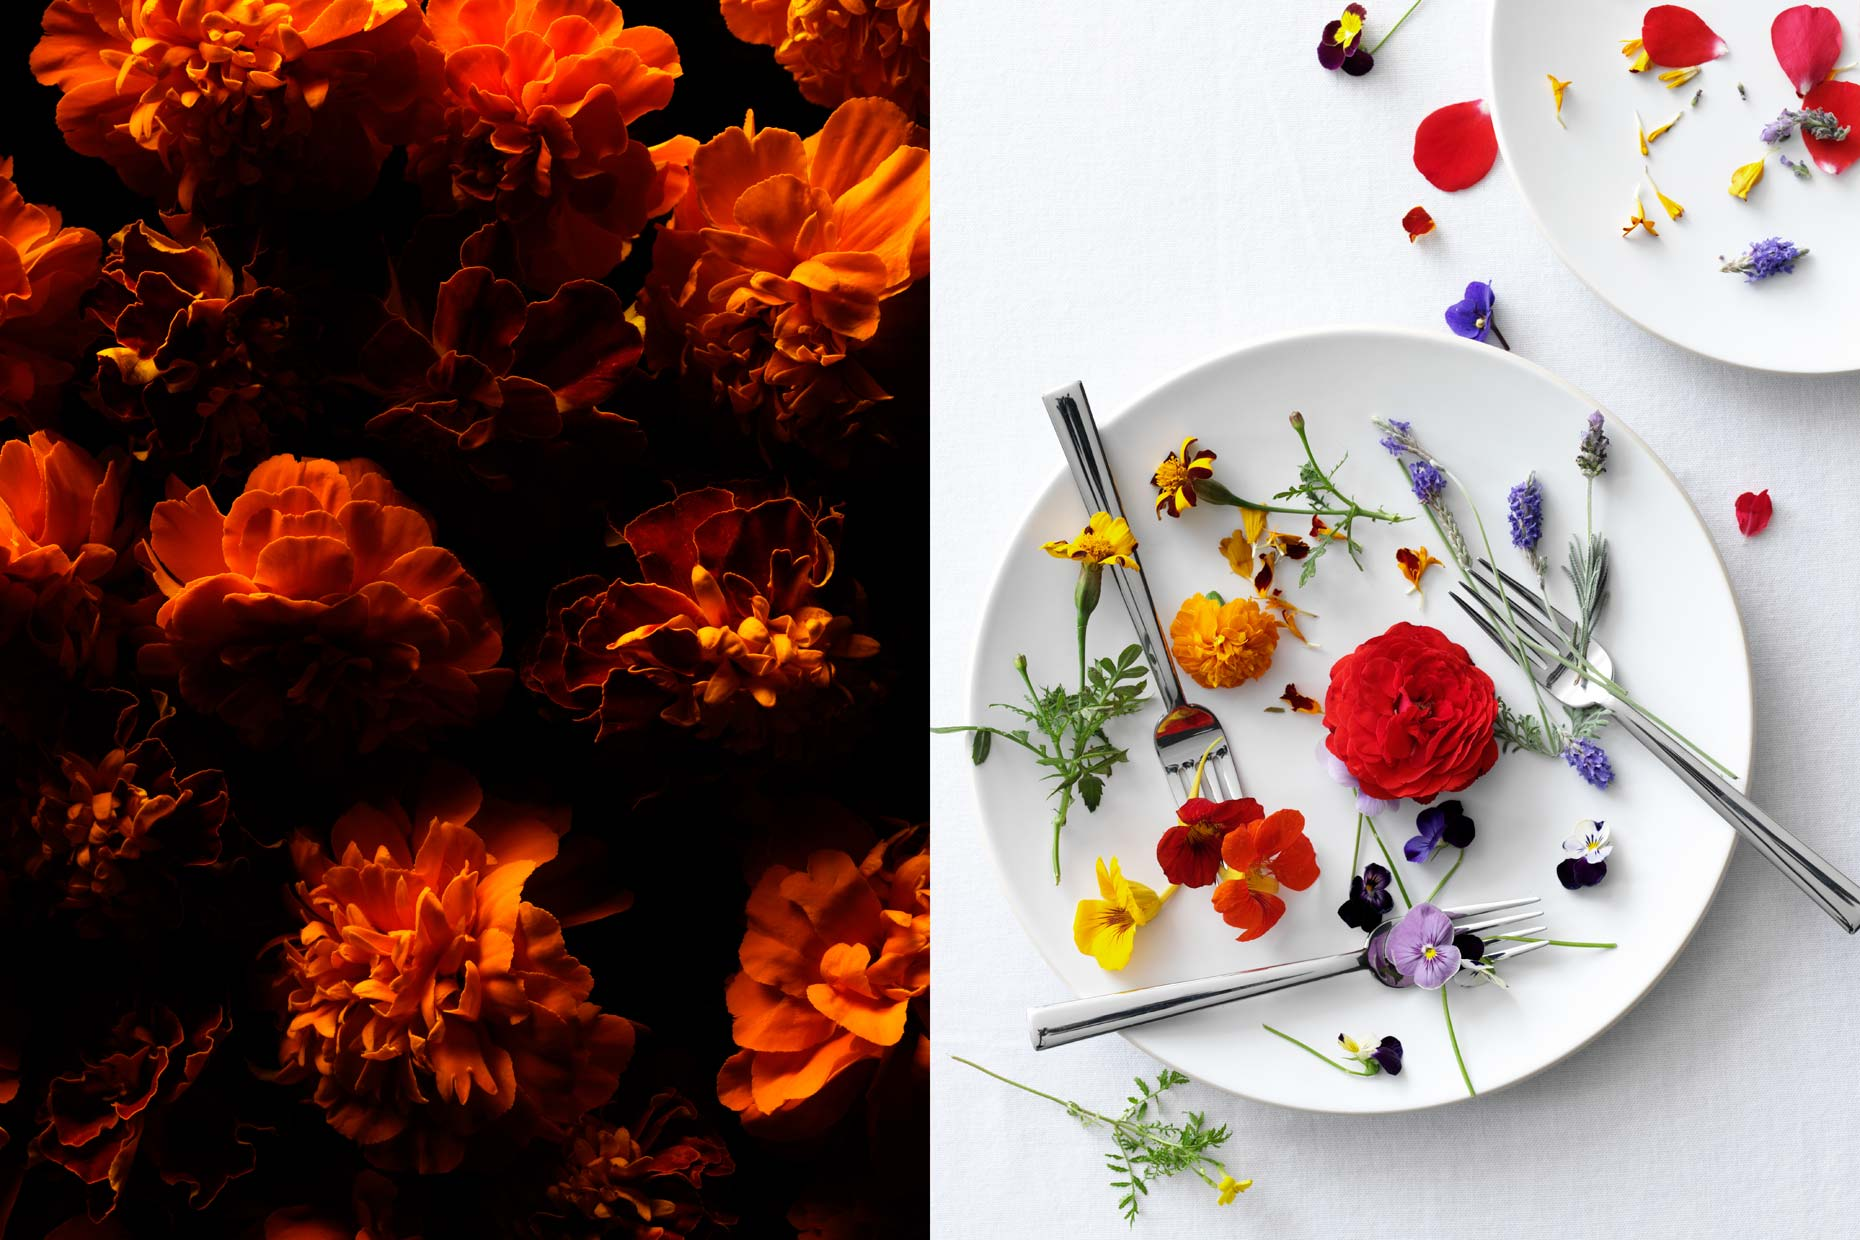 adrian_mueller_edible_flowers_01